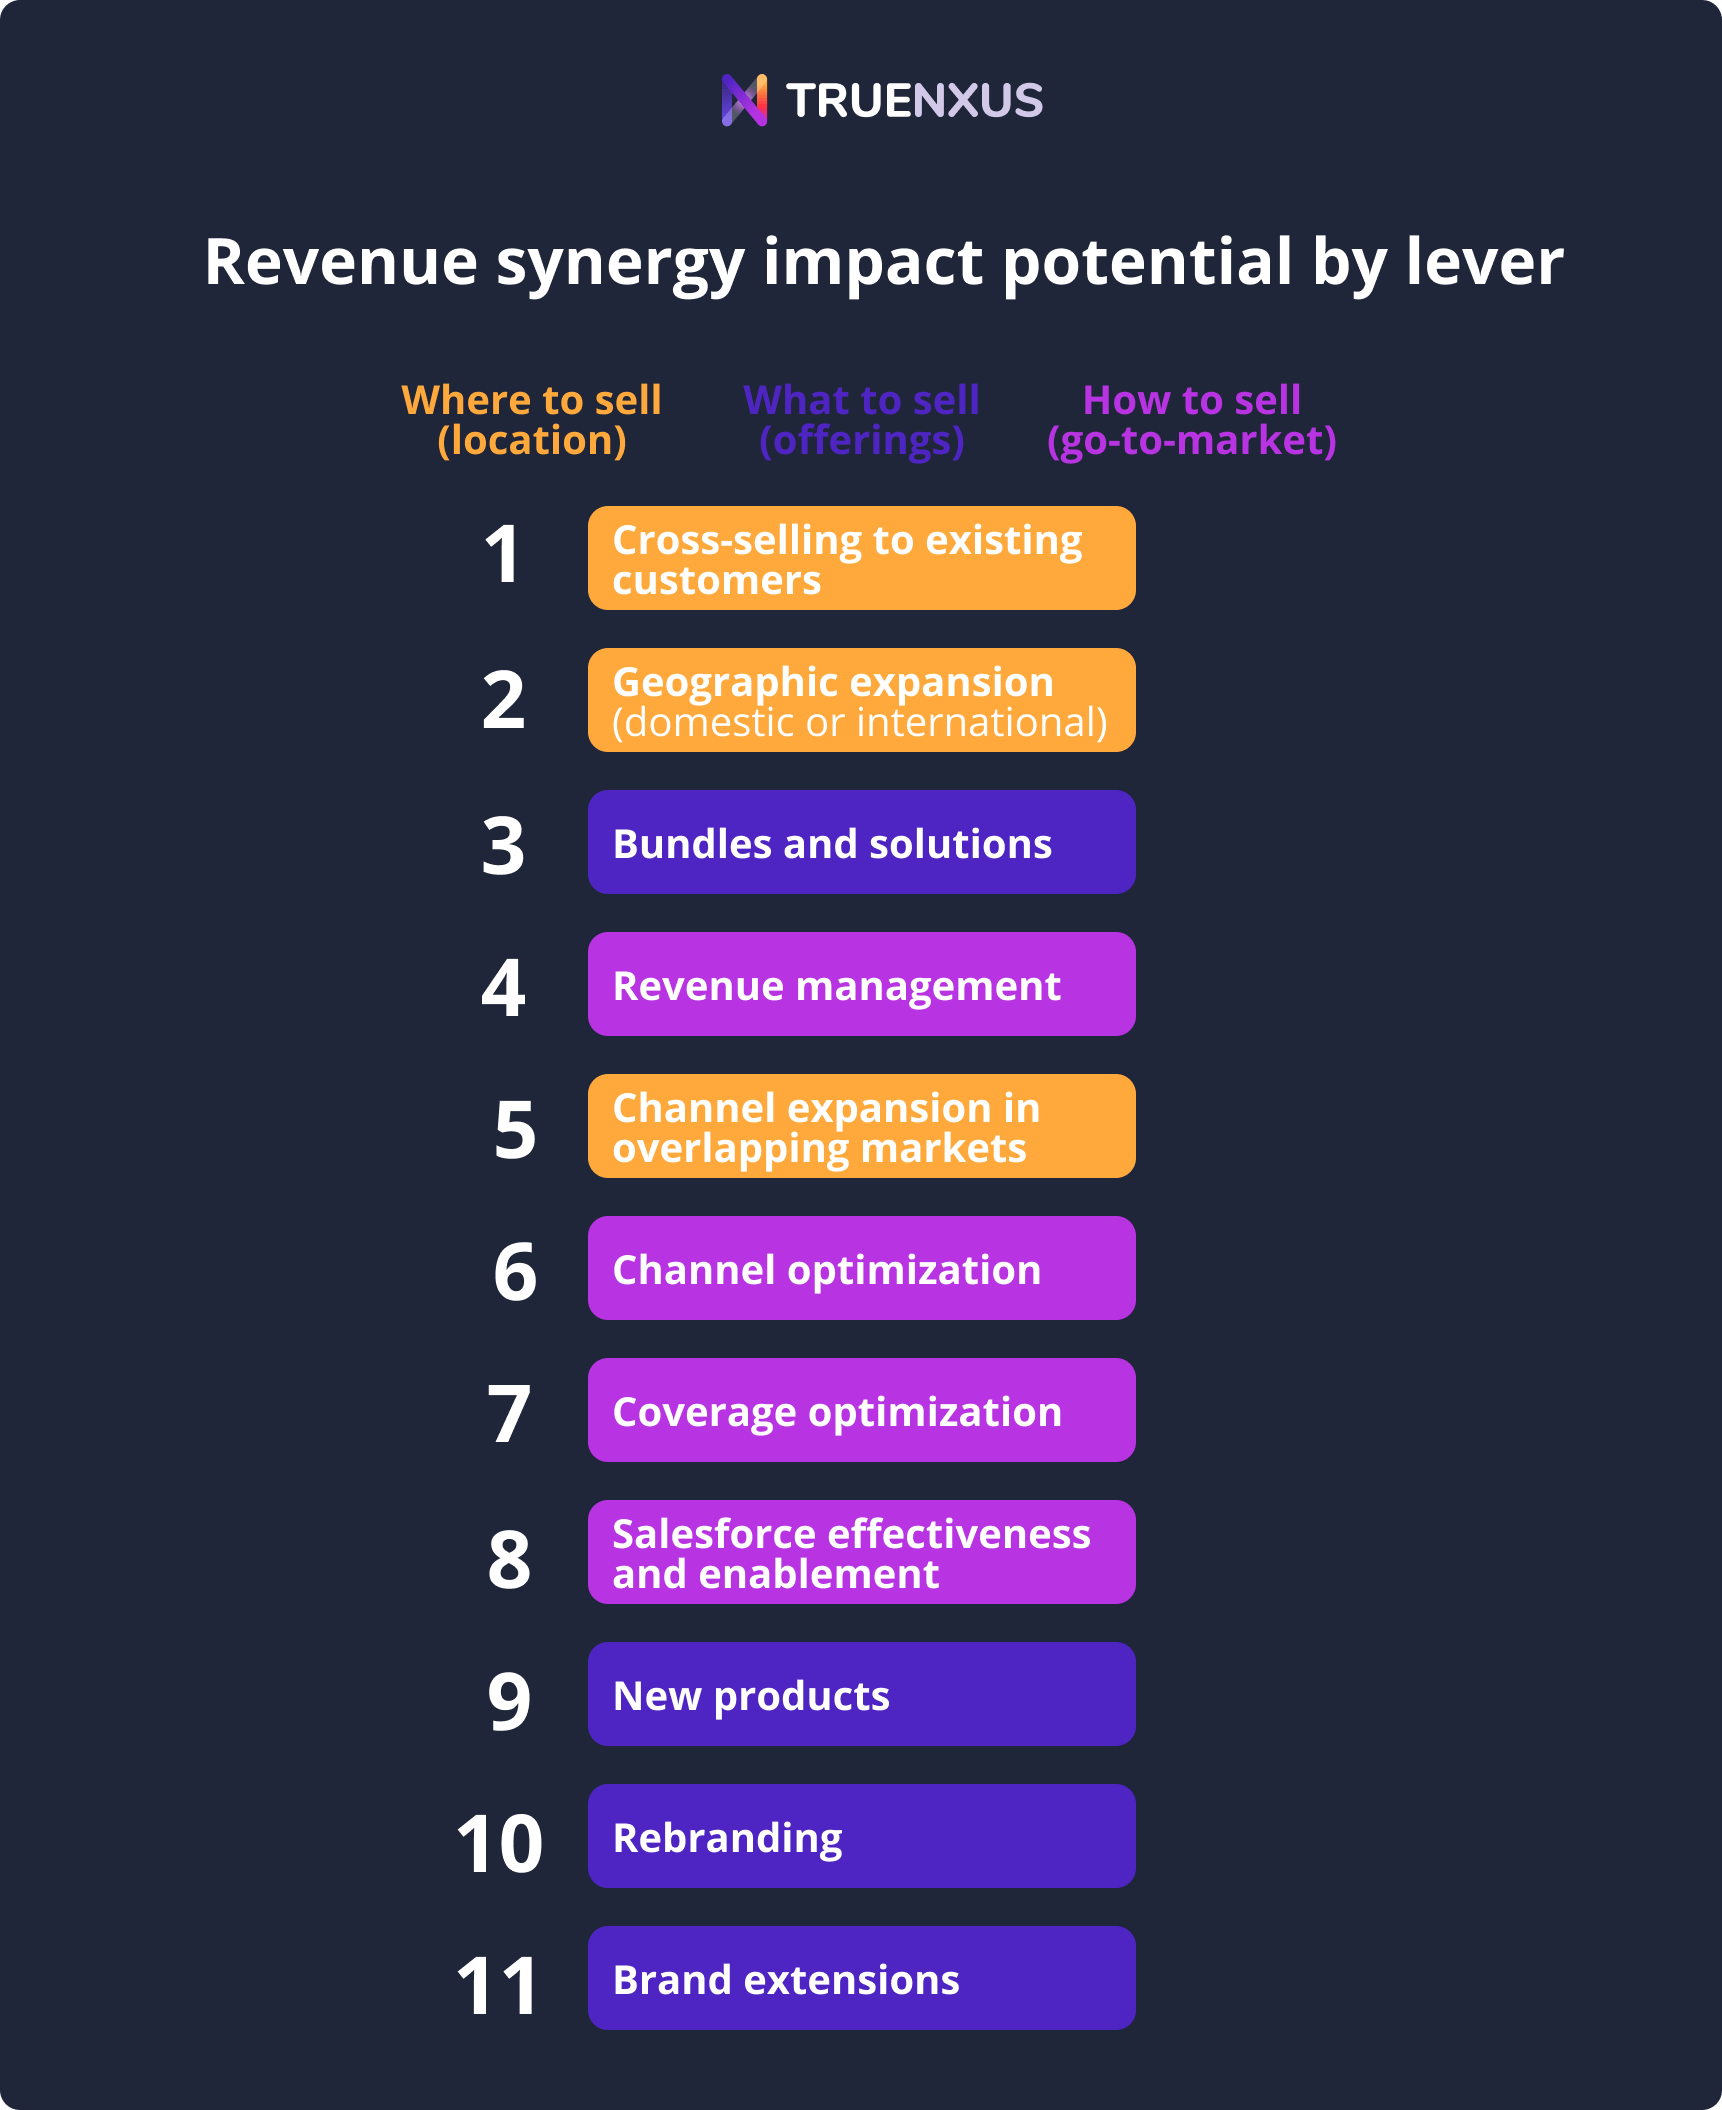 Revenue synergy impact potential by lever